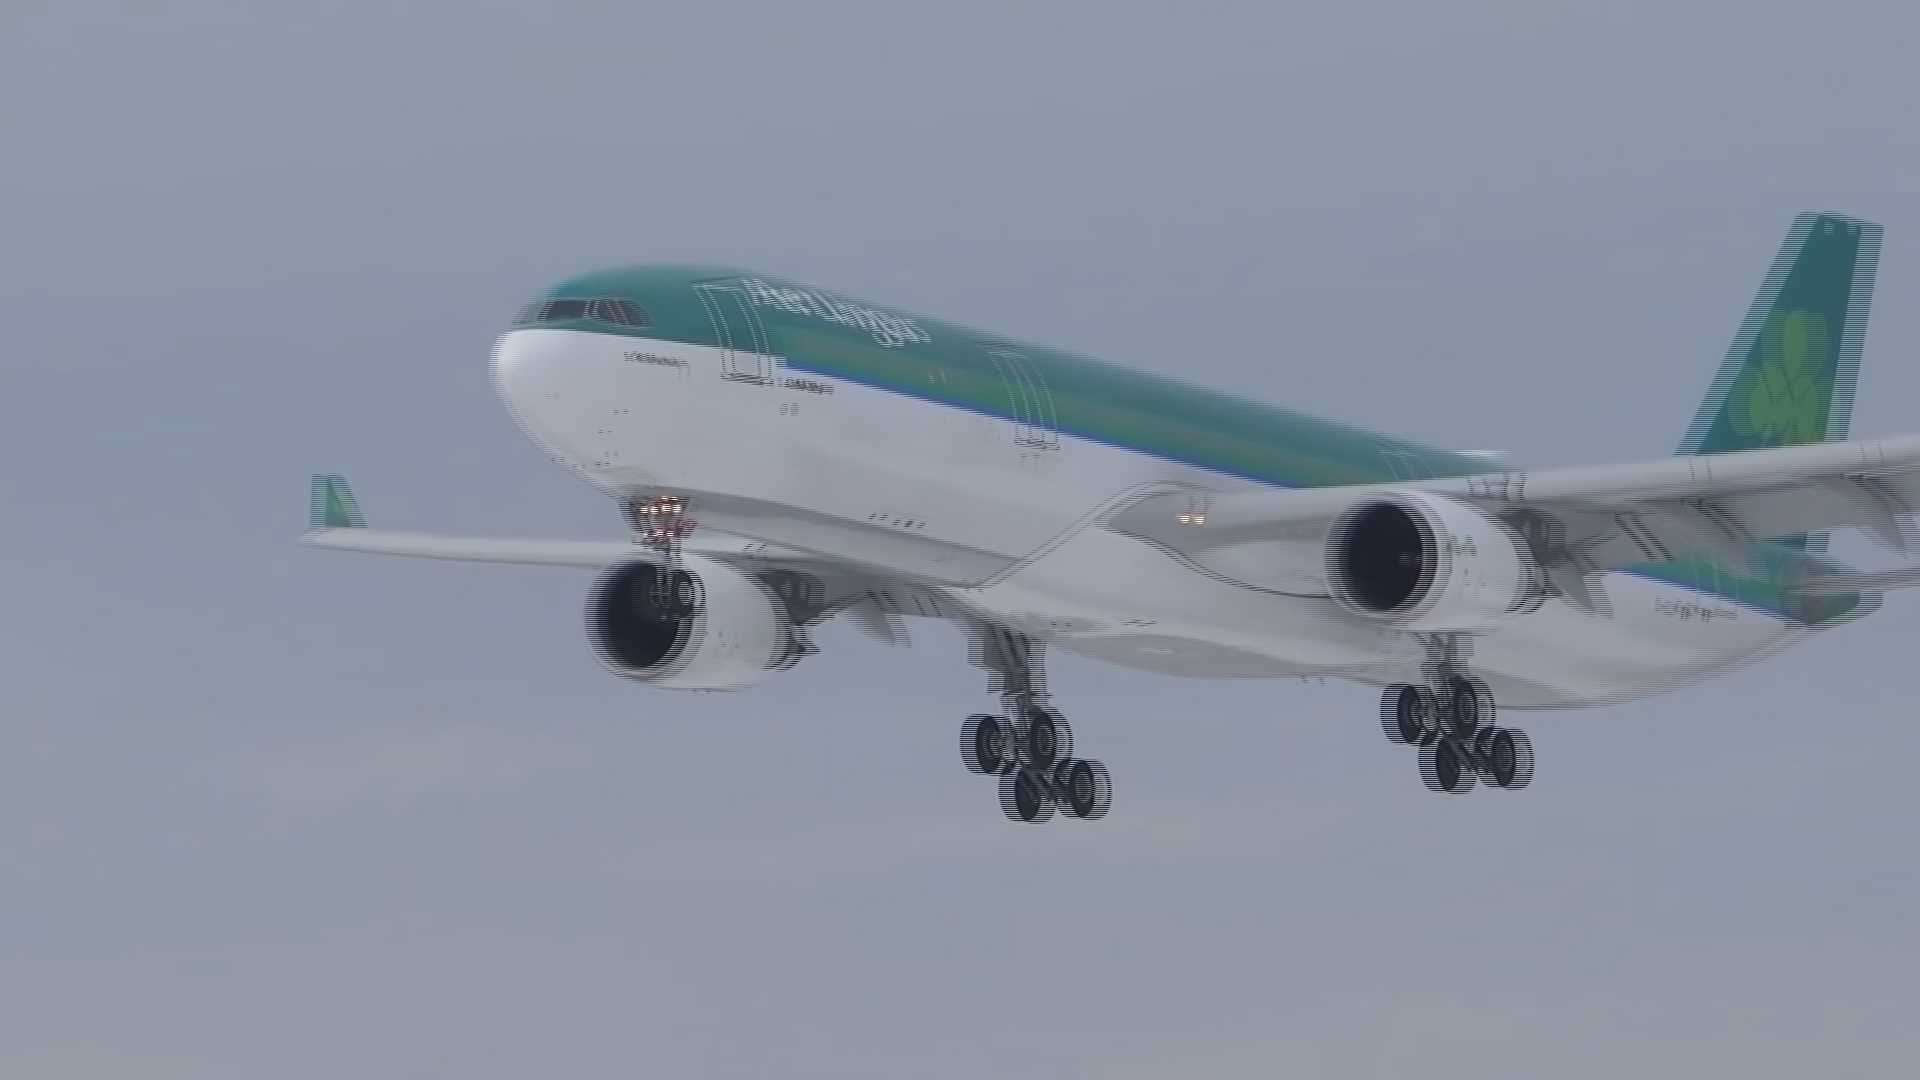 Aer Lingus had scheduled a connecting flight for Edens' daughters with United Airlines, which has a strict policy against minors flying unaccompanied. (Source: 3TV)